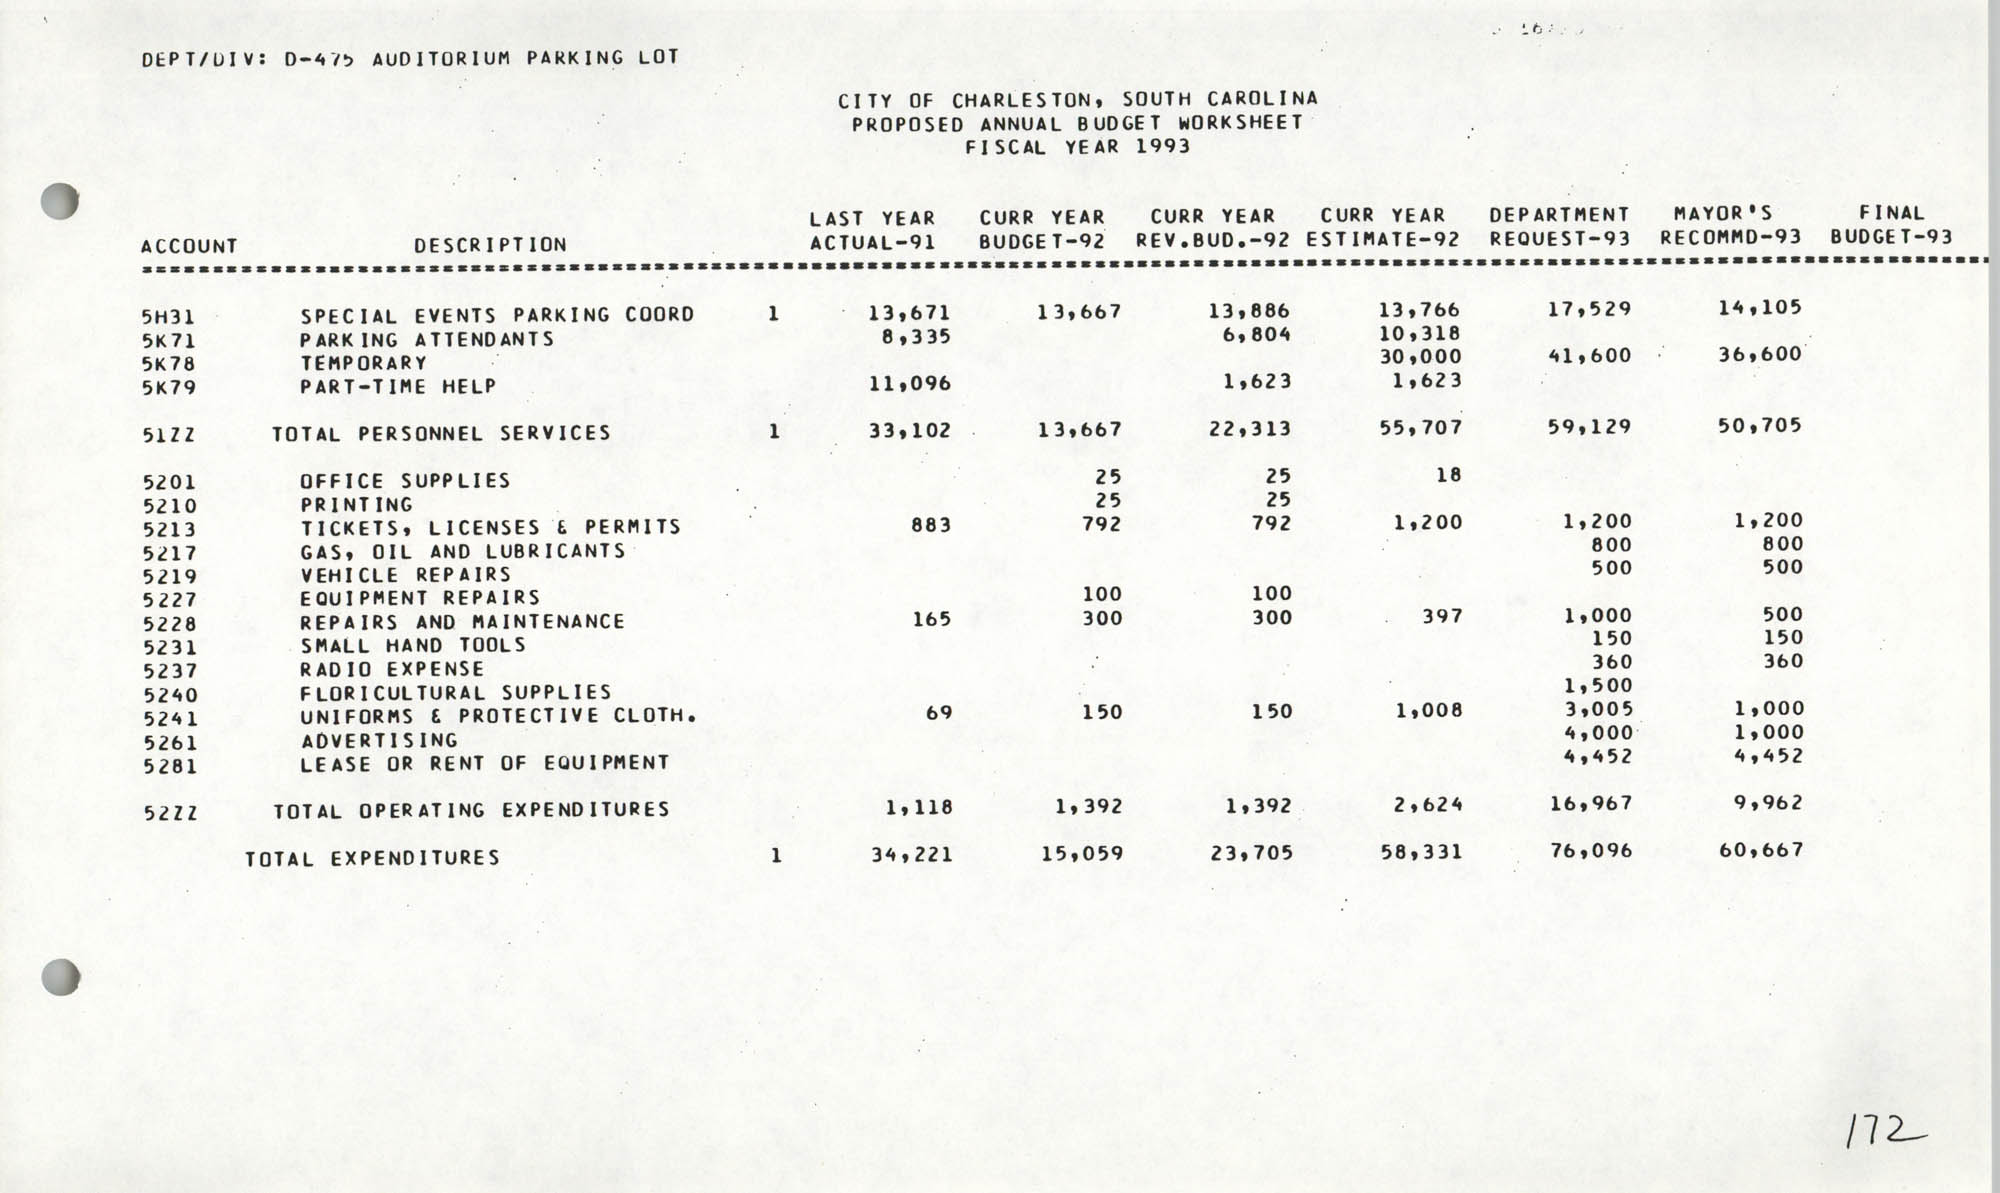 The City Council of Charleston, South Carolina, 1993 Budget, Page 172